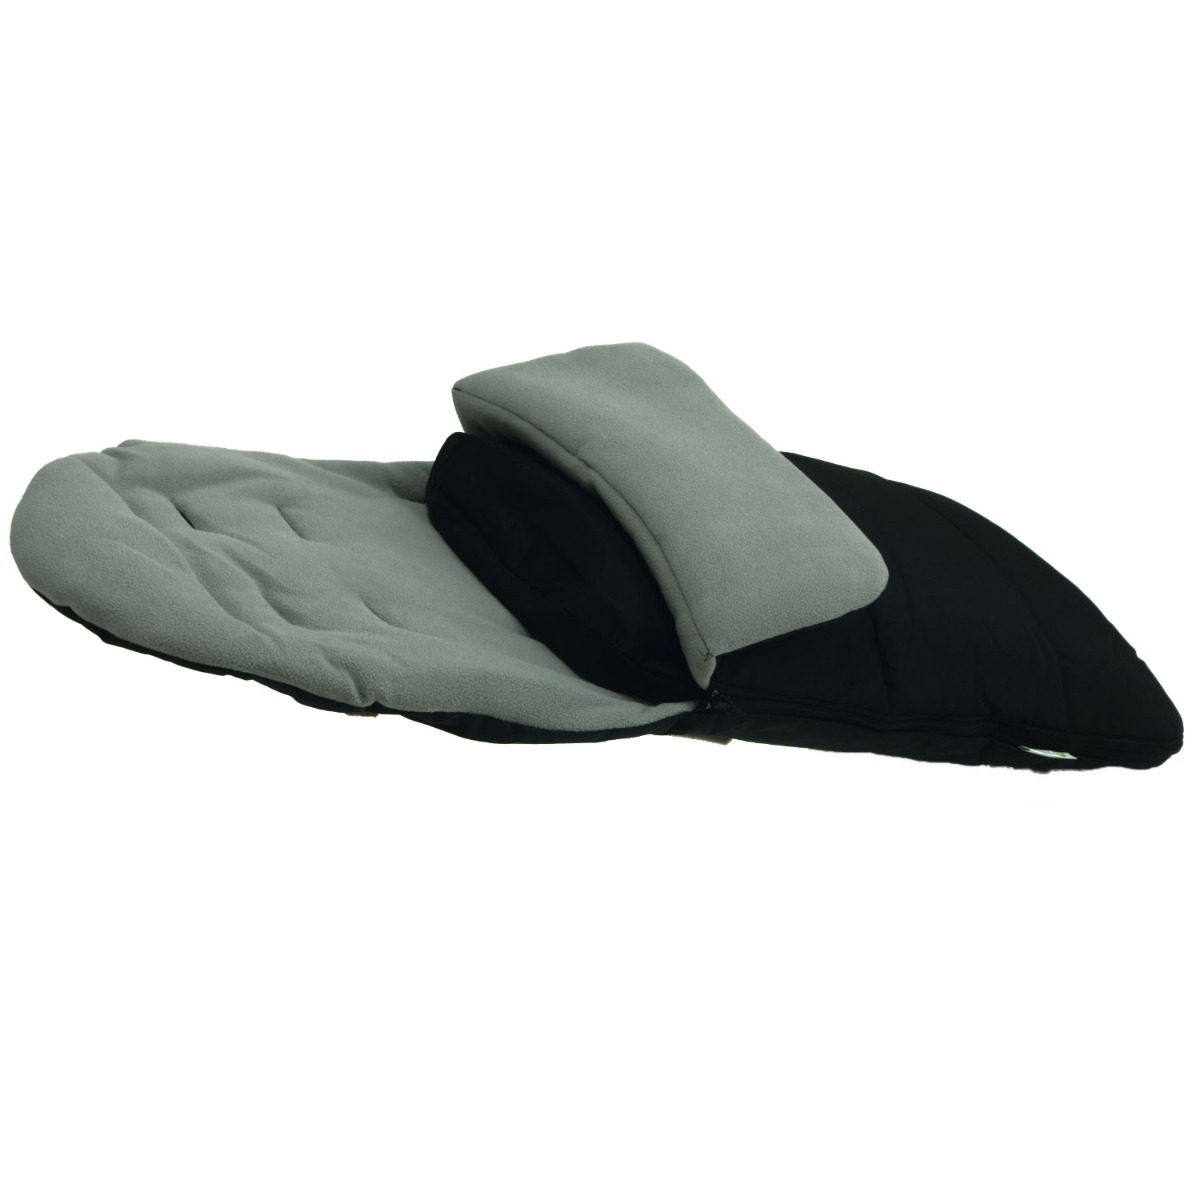 Universal-Pushchair-Footmuff-Cosytoes-Fleece-Lined-Fit-For-Stroller-Prams-Buggy thumbnail 18